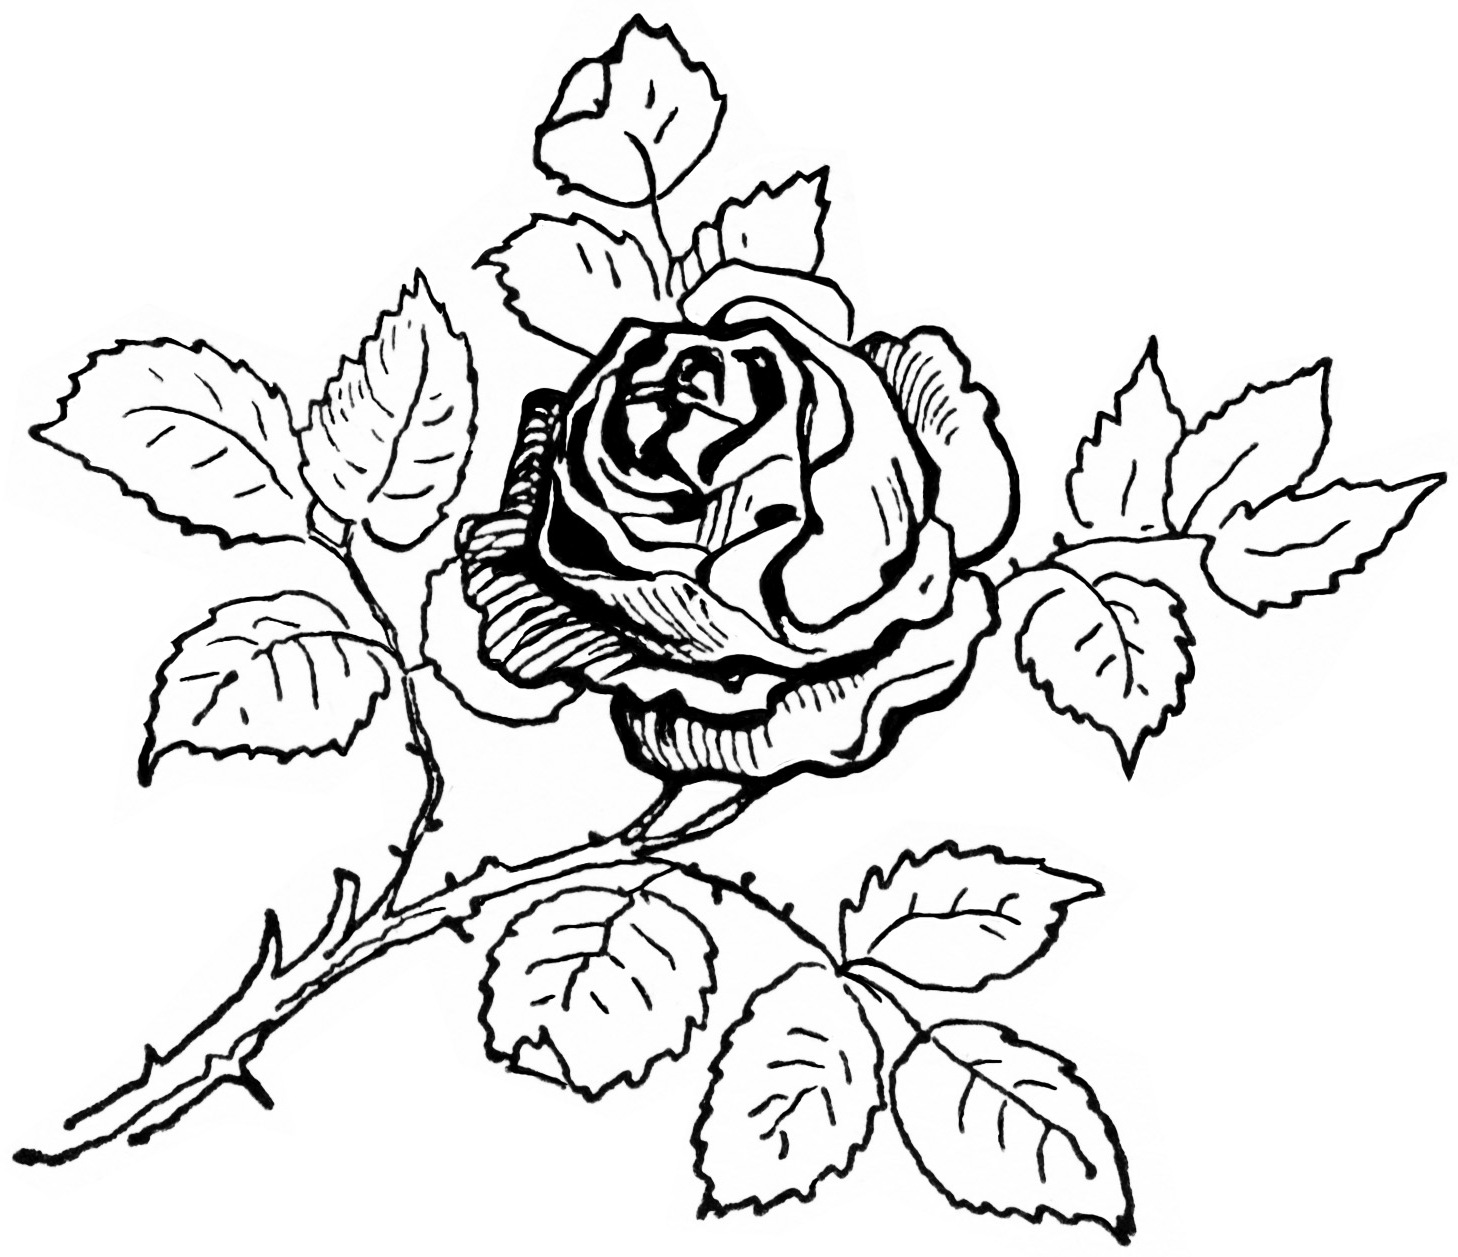 a coloring page of a rose flower coloring pages rose a a page coloring of